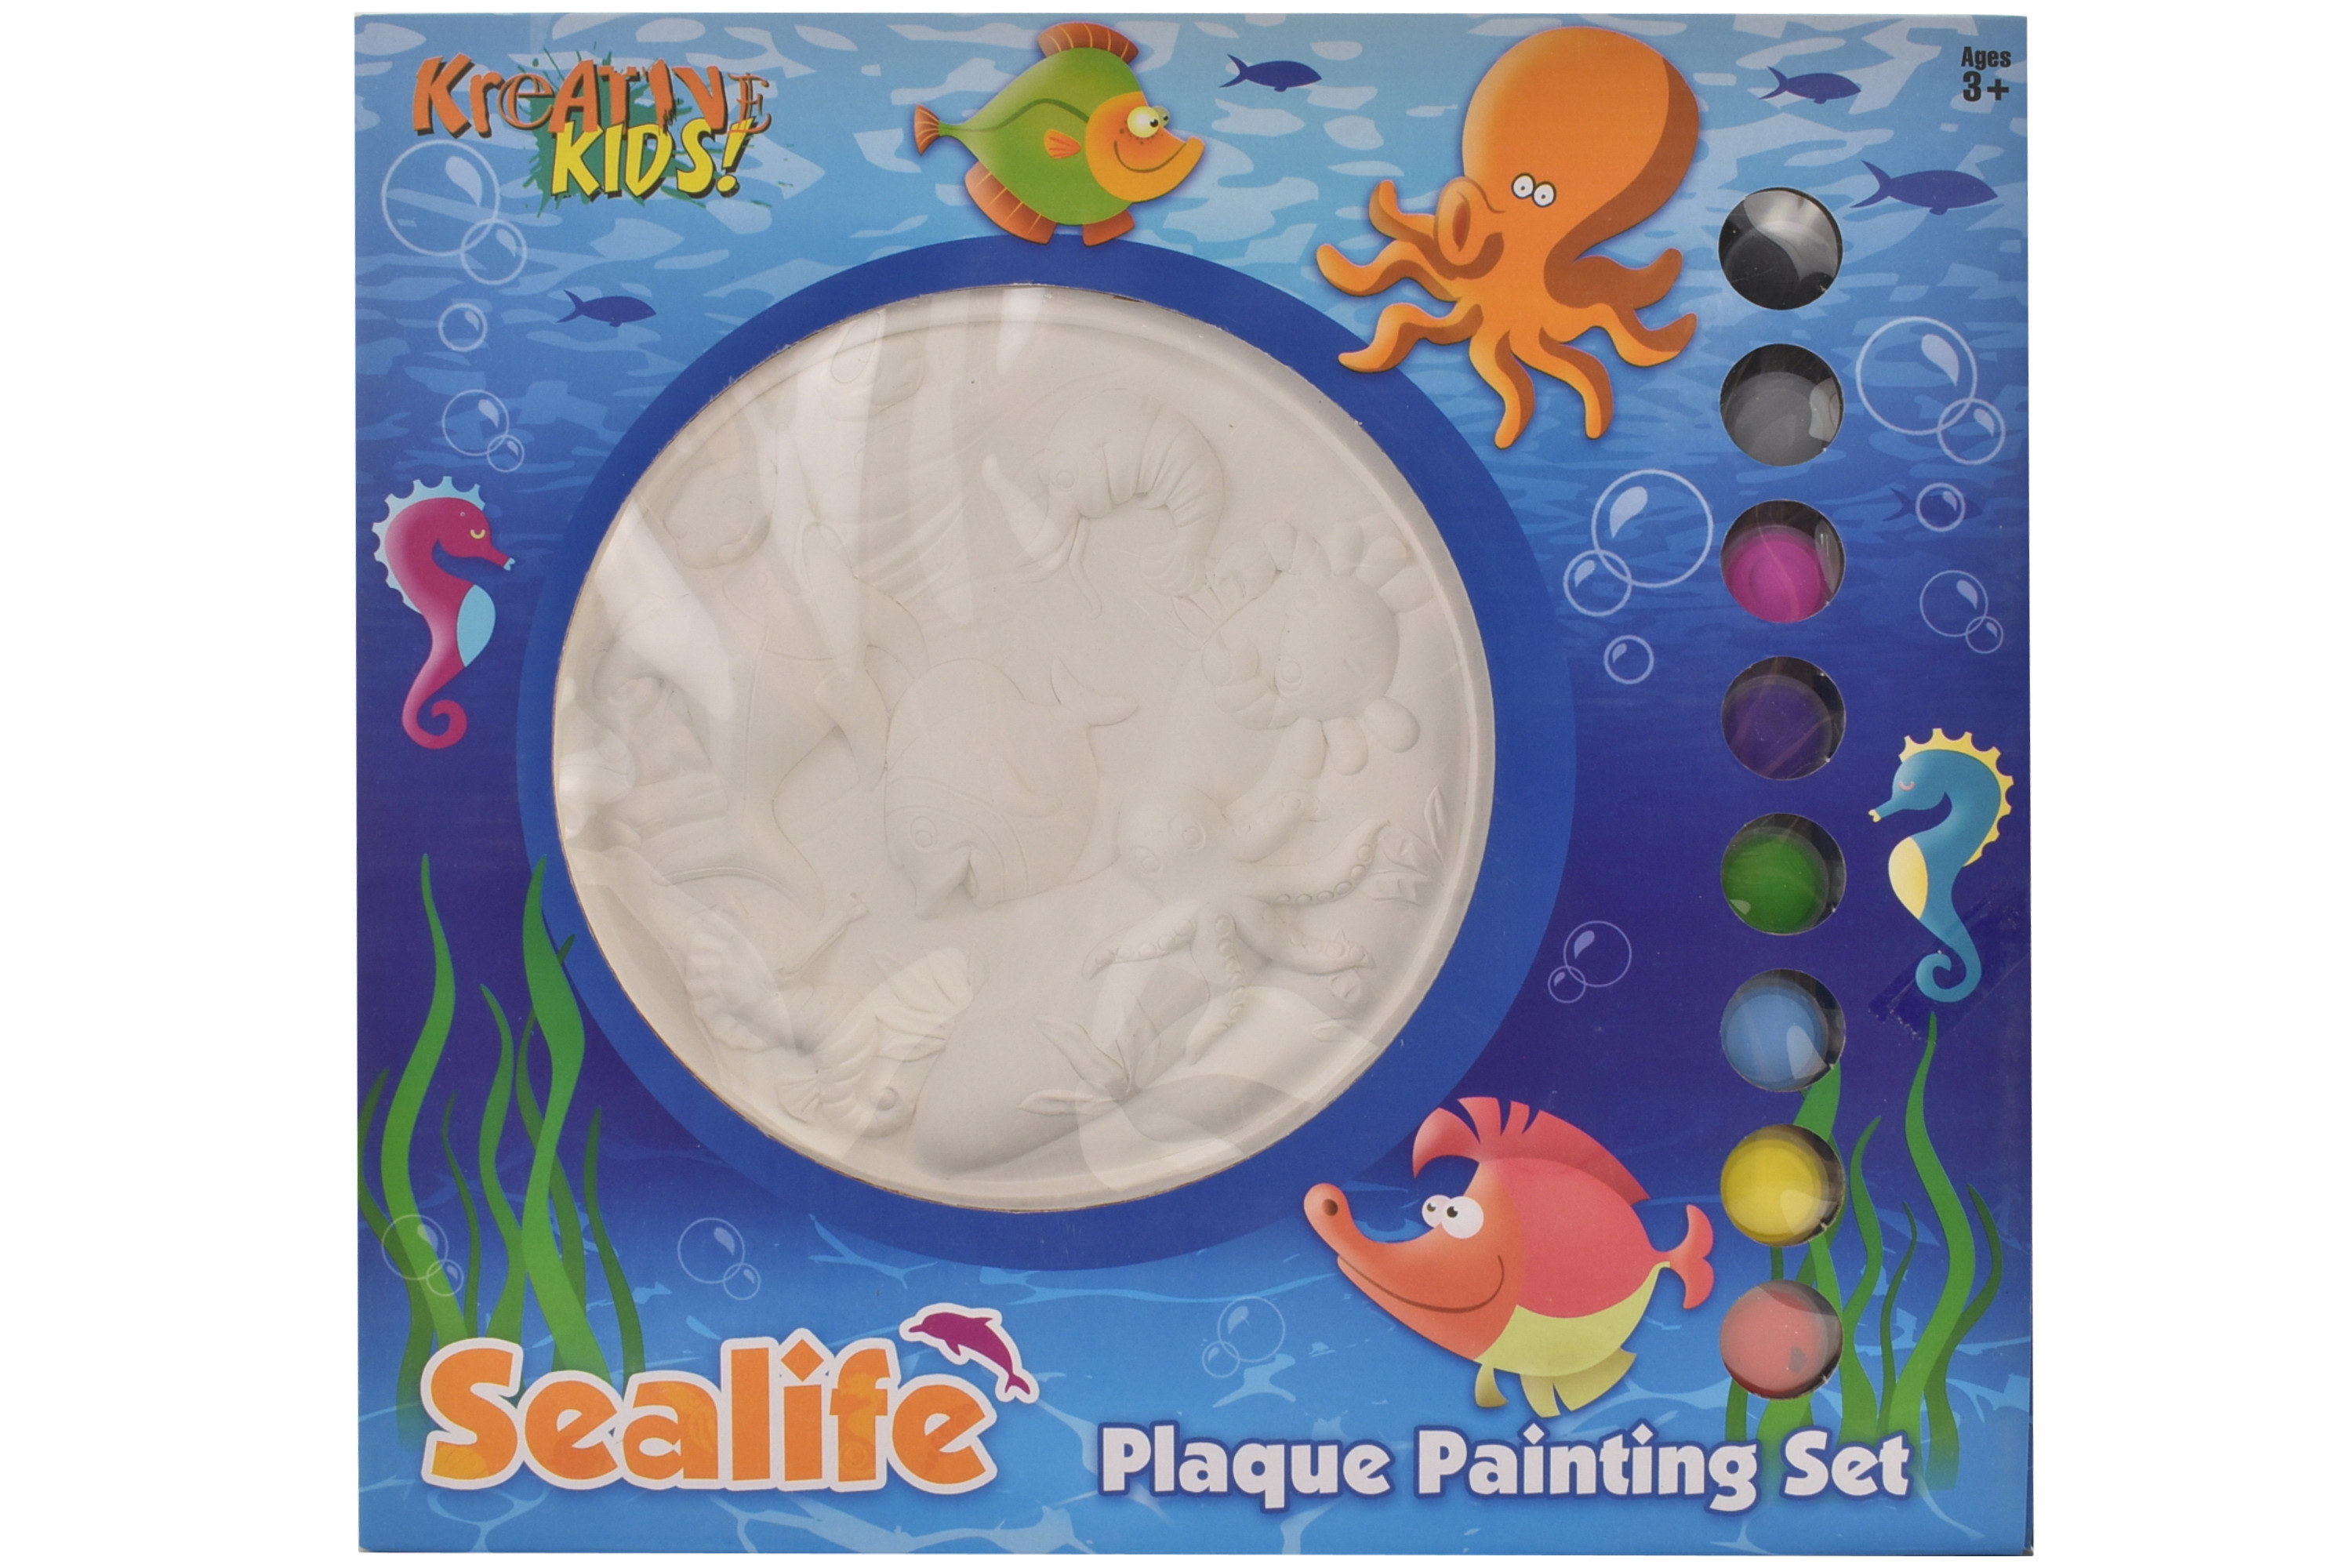 Sea Life Plaque Plaster Painting Set In Window Box